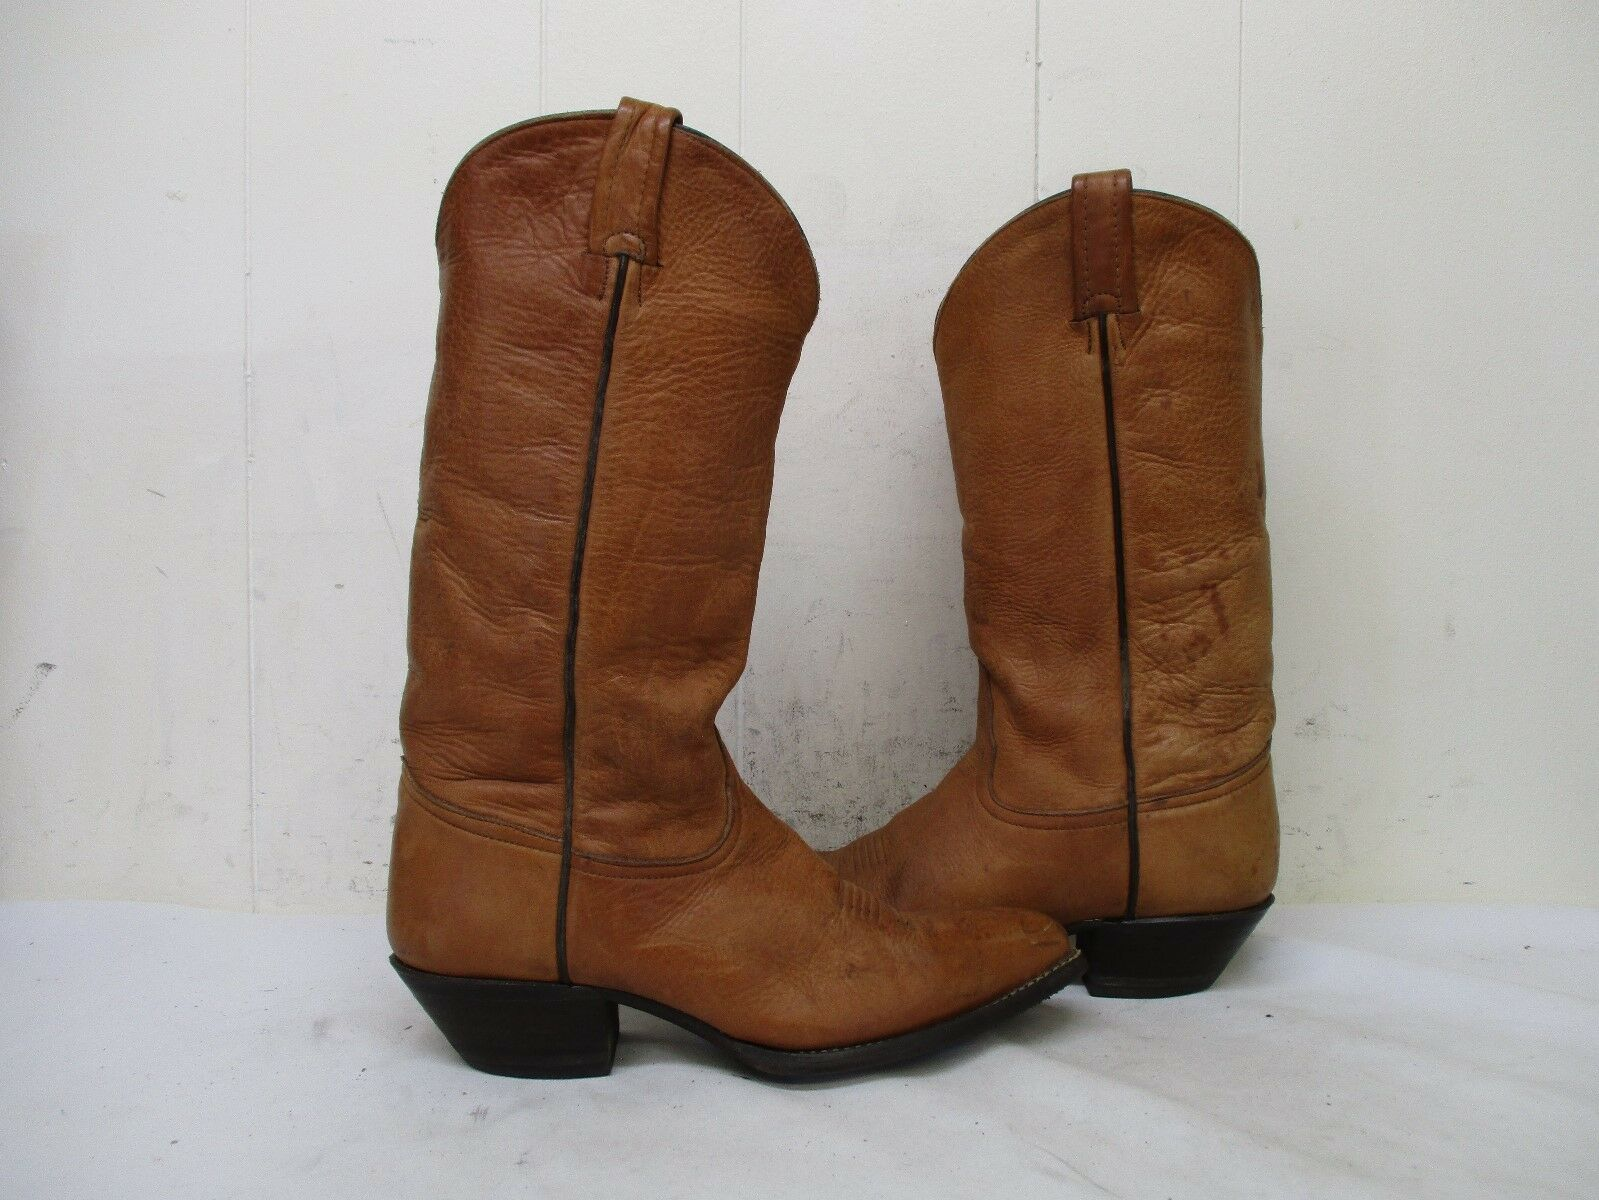 Tony Boots Lama Brown Leather Cowboy Boots Tony Womens Size 7 M Style 1012L a4adb5